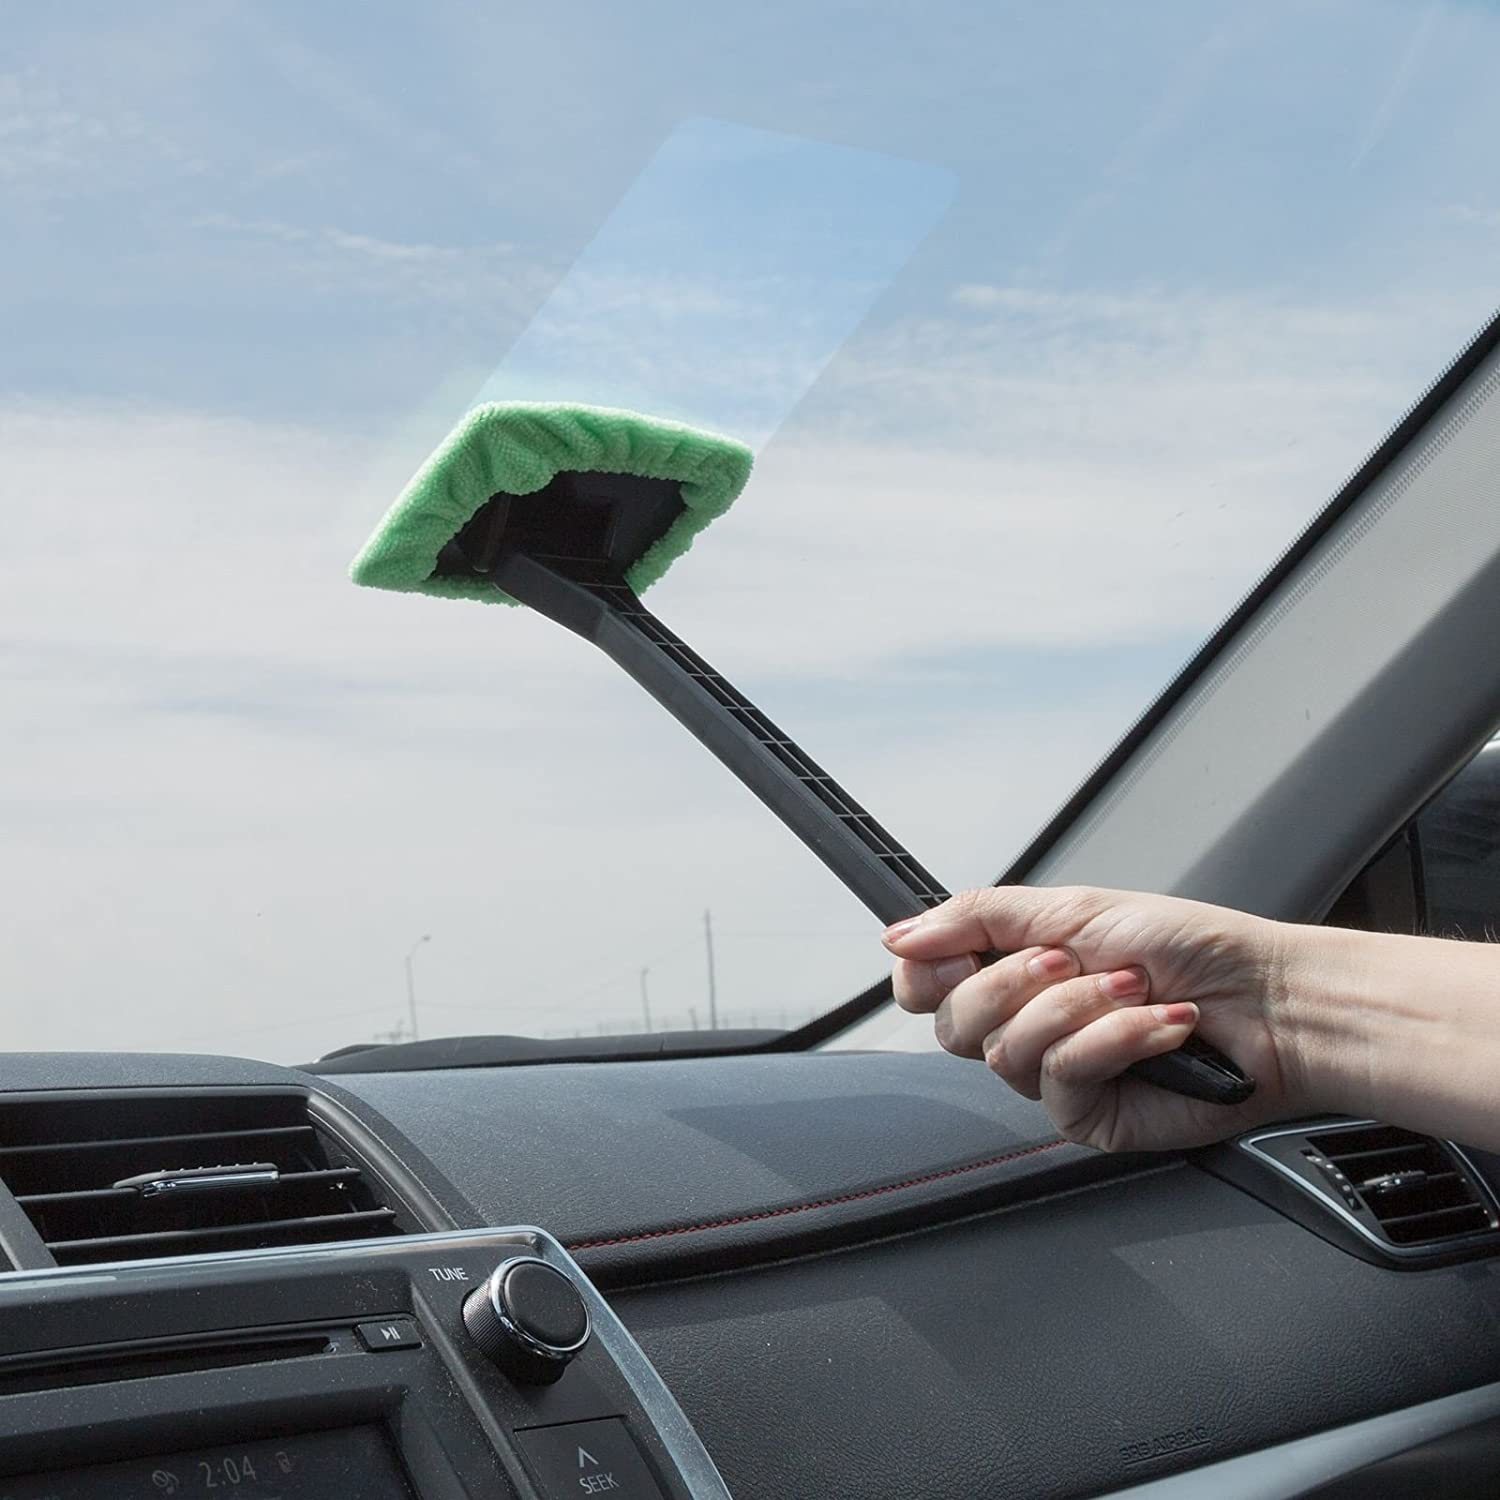 Two Windshield Cleaner with Microfiber Cloth, Handle and Pivoting Head- Glass Washer Cleaning Tool for Windows and one 4 oz Spray Bottle Stalwart